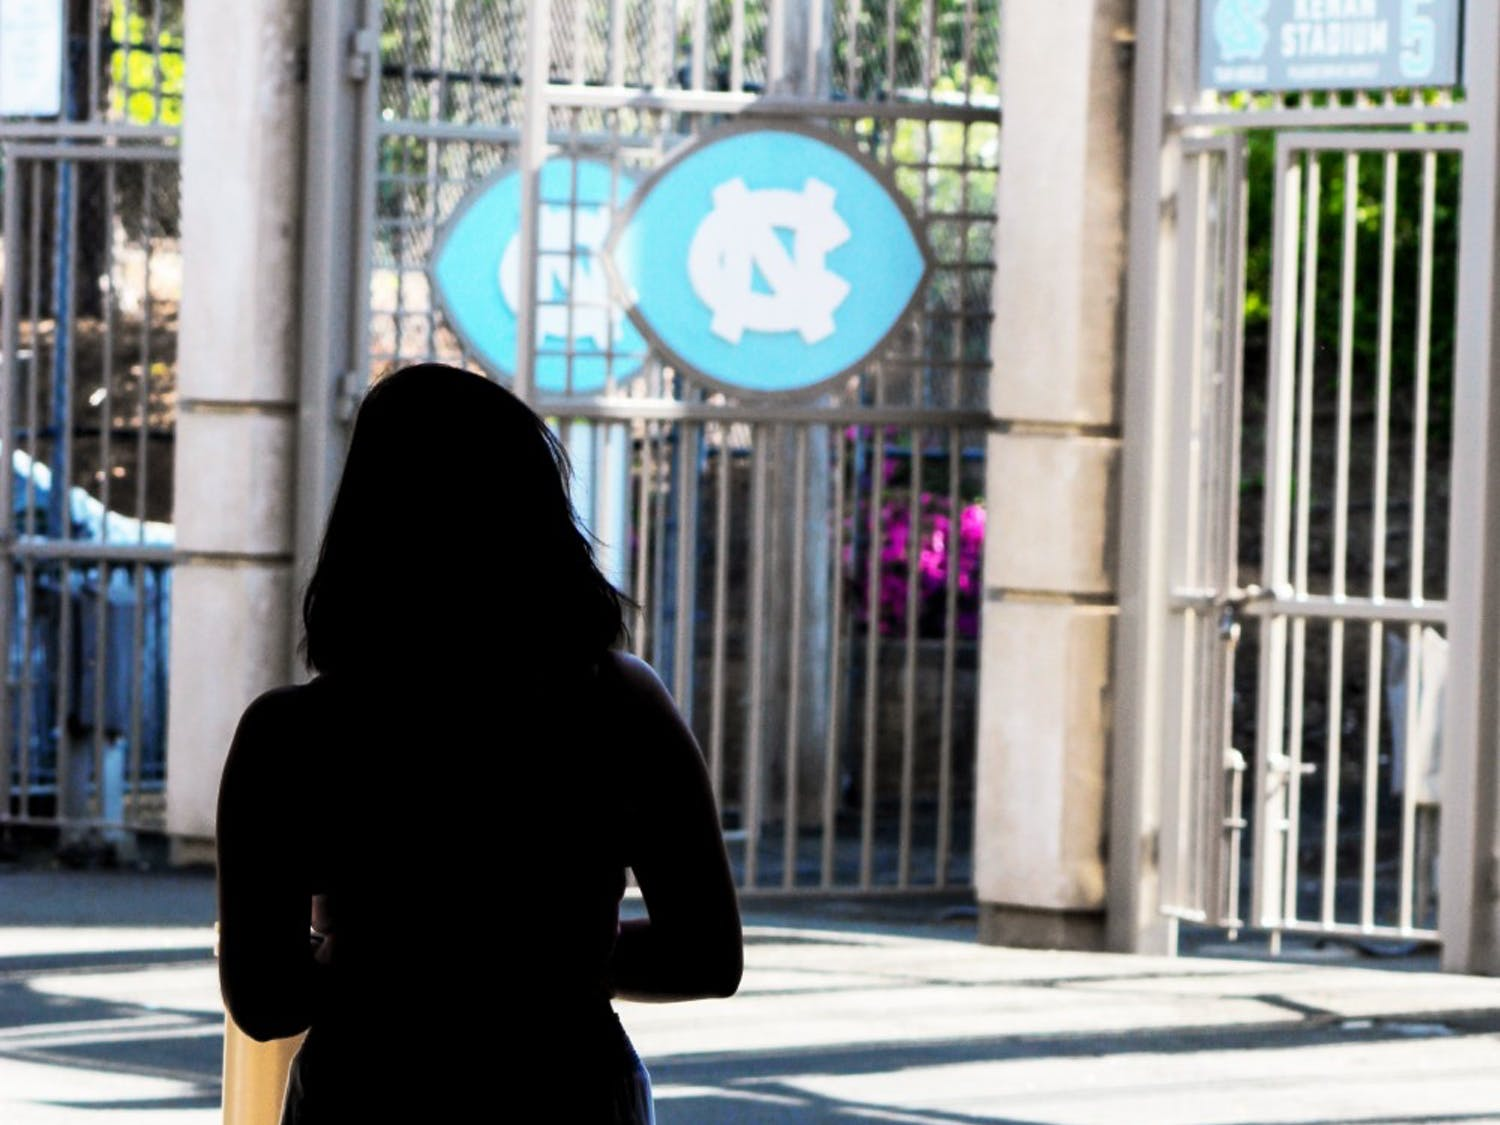 According to UNC student responses to the AAU survey, over 68 percent of students who reported being sexually assaulted in any manner said they never reported the assault because they thought it would be too difficult or embarrassing, or that it wasn't serious enough. Clarification: This photo was taken at Kenan Stadium to show the UNC logo. The story does not involve the football team in any way.